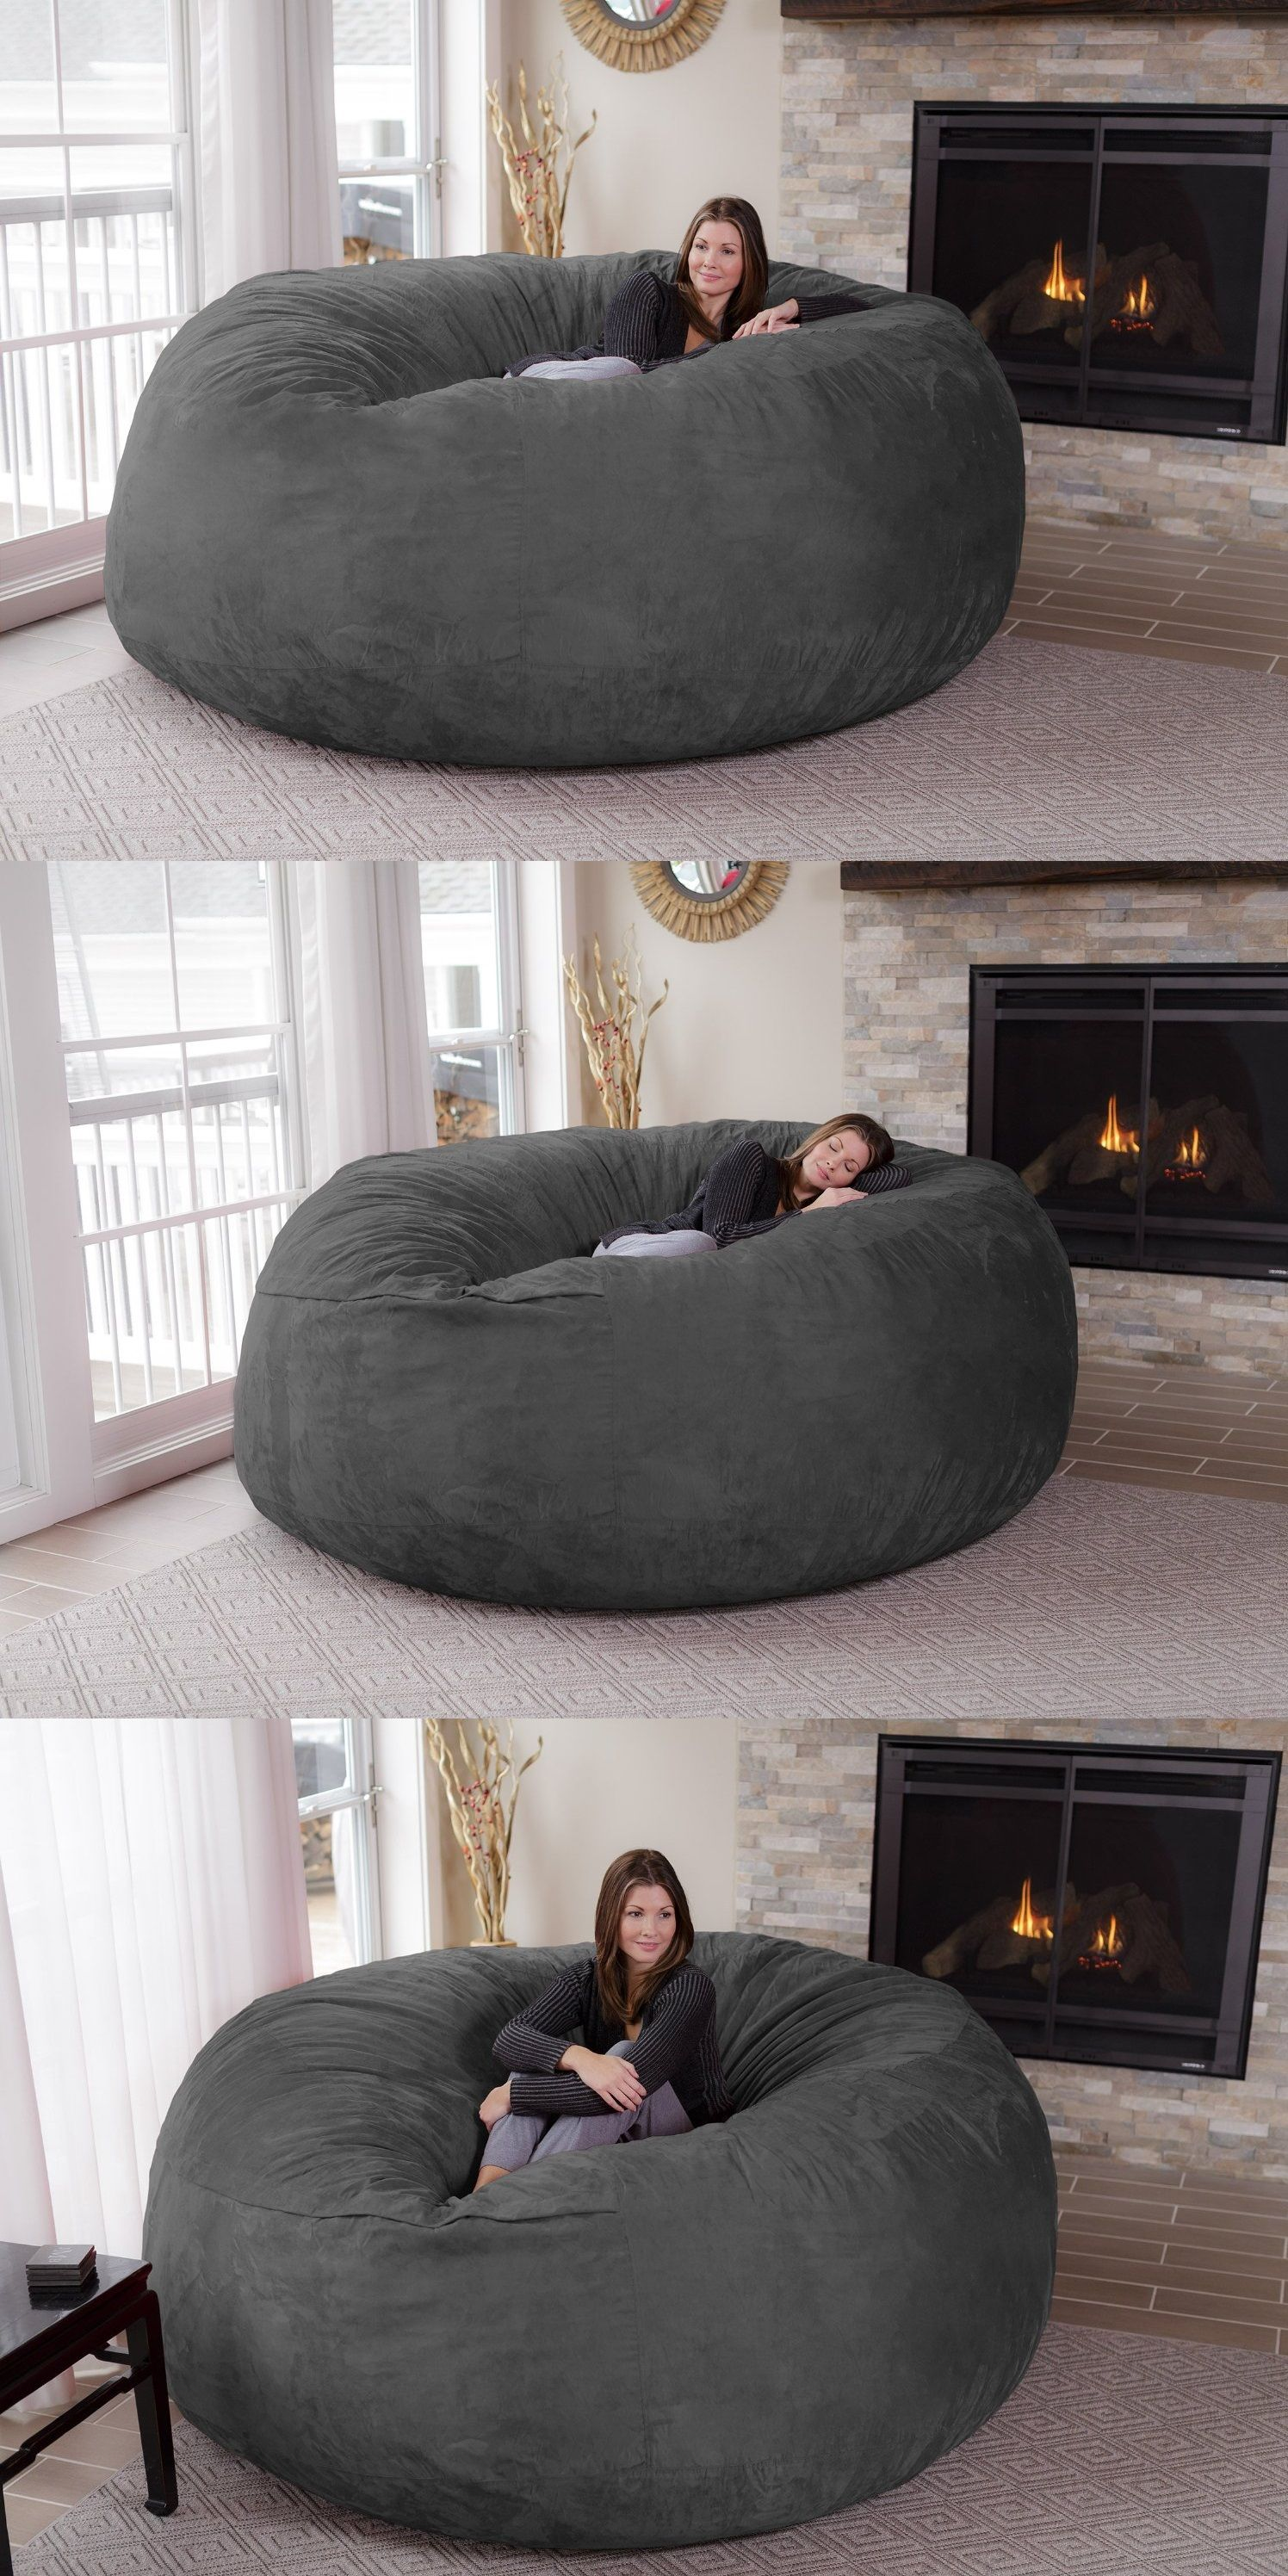 Turn A Day Of Lounging Around Your House Into Paradise By Plopping Down  Onto This Jumbo Bean Bag Chair. Itu0027s Big Enough To Accommodate Up To Three  People ...